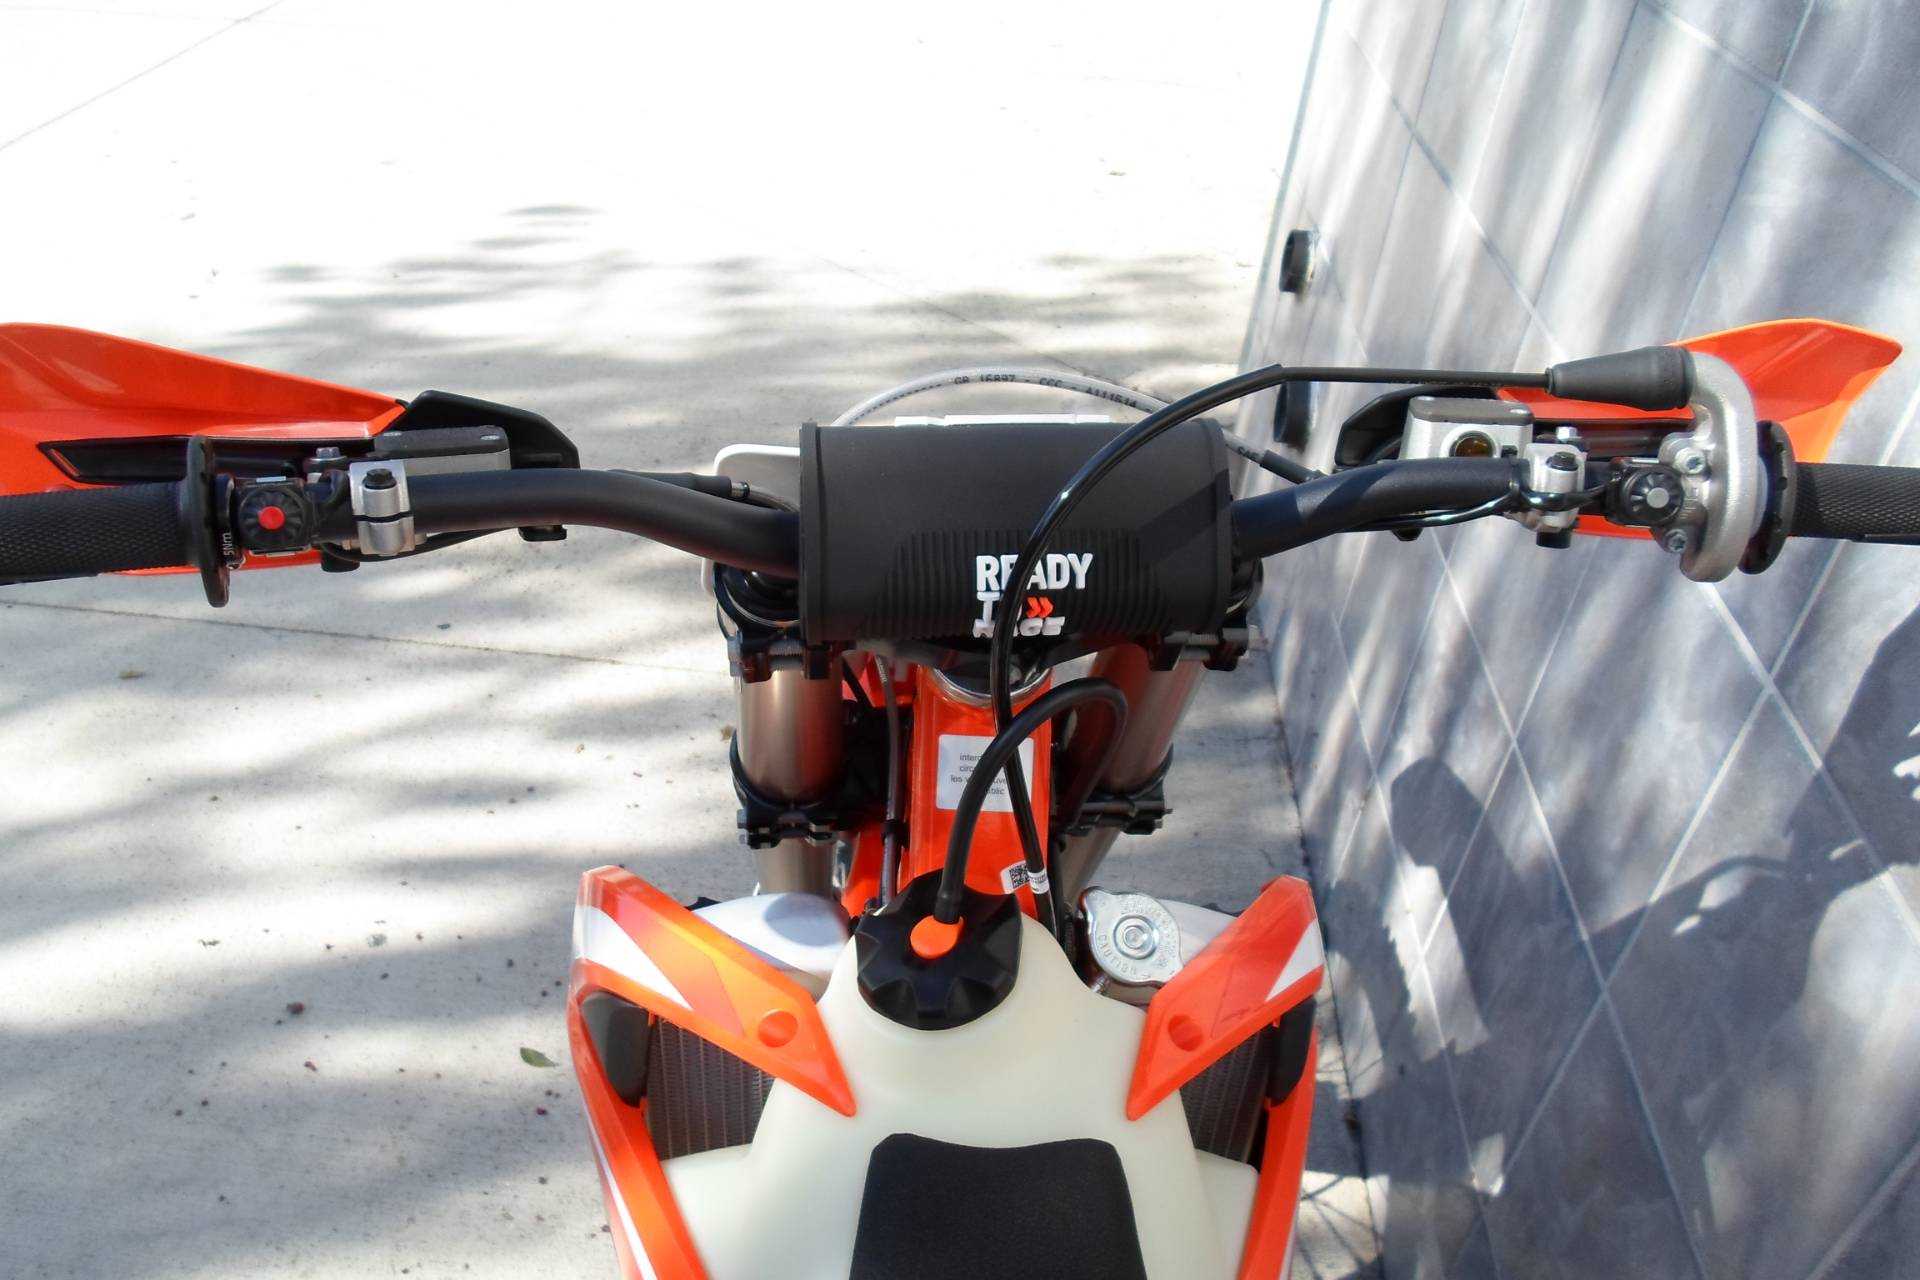 2018 ktm xc 300. brilliant 300 2018 ktm 300 xc in san marcos california throughout ktm xc w